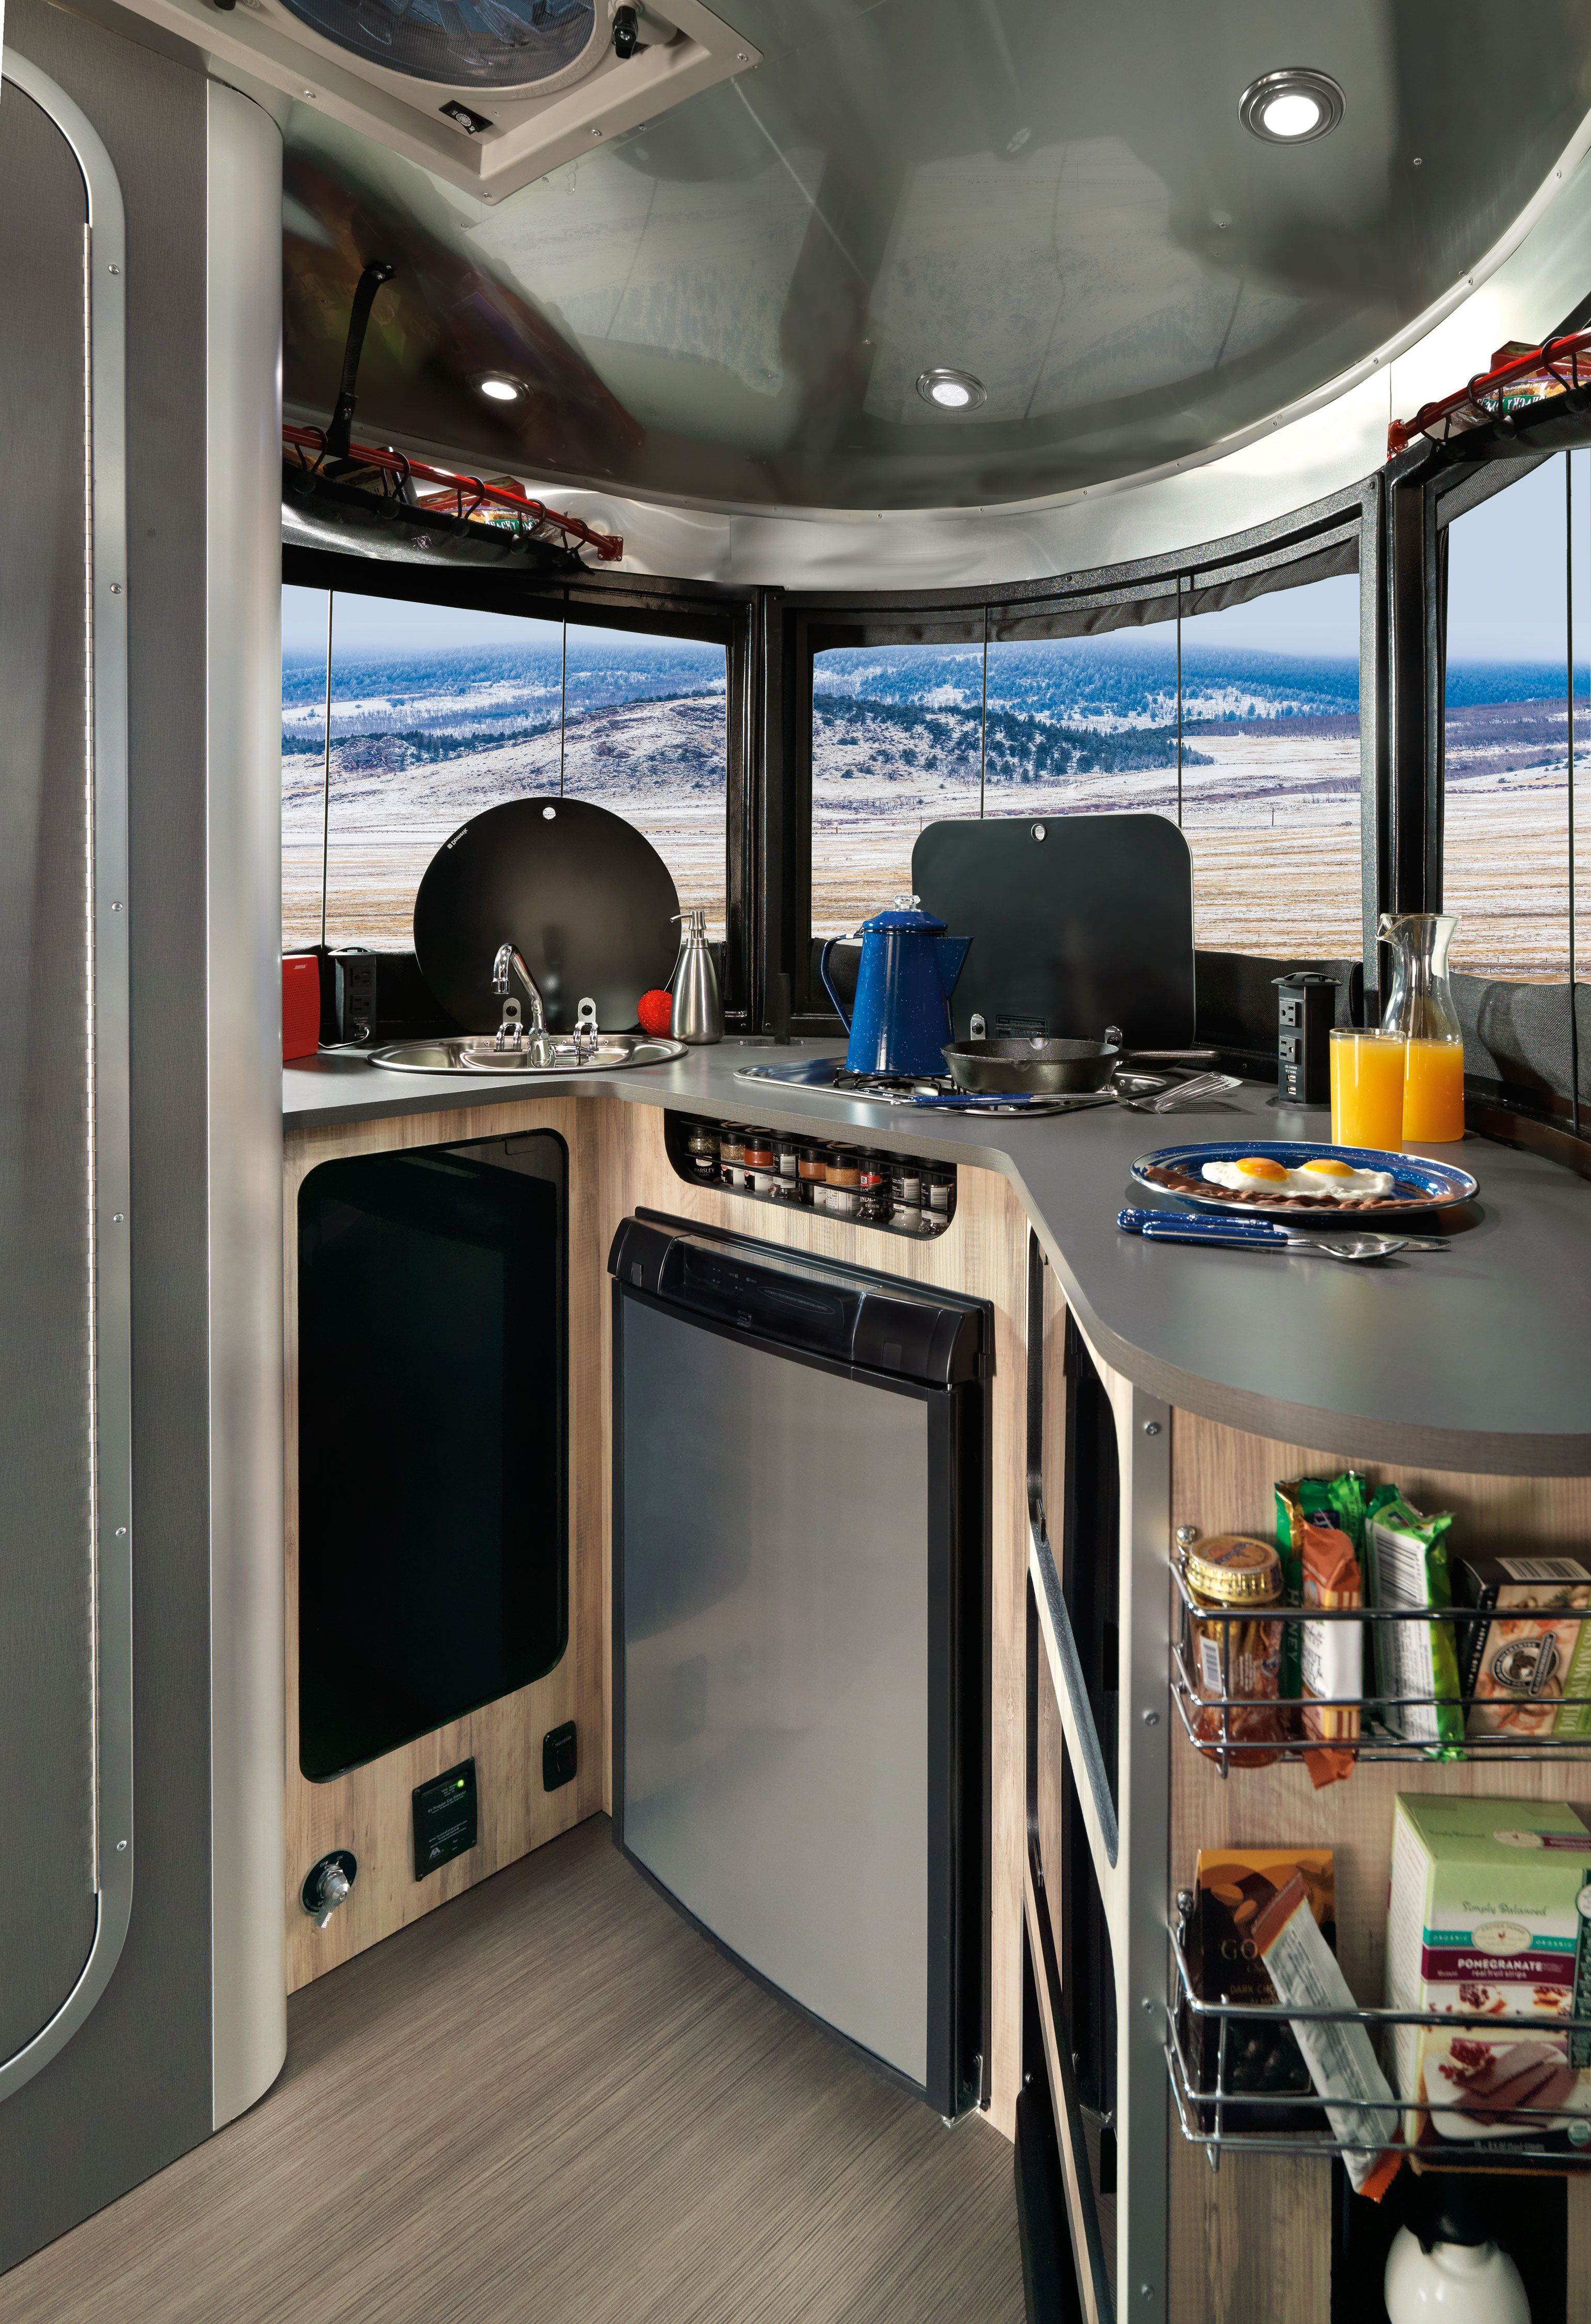 The New Airstream Base Camp Travel Trailer From Airstream Of South